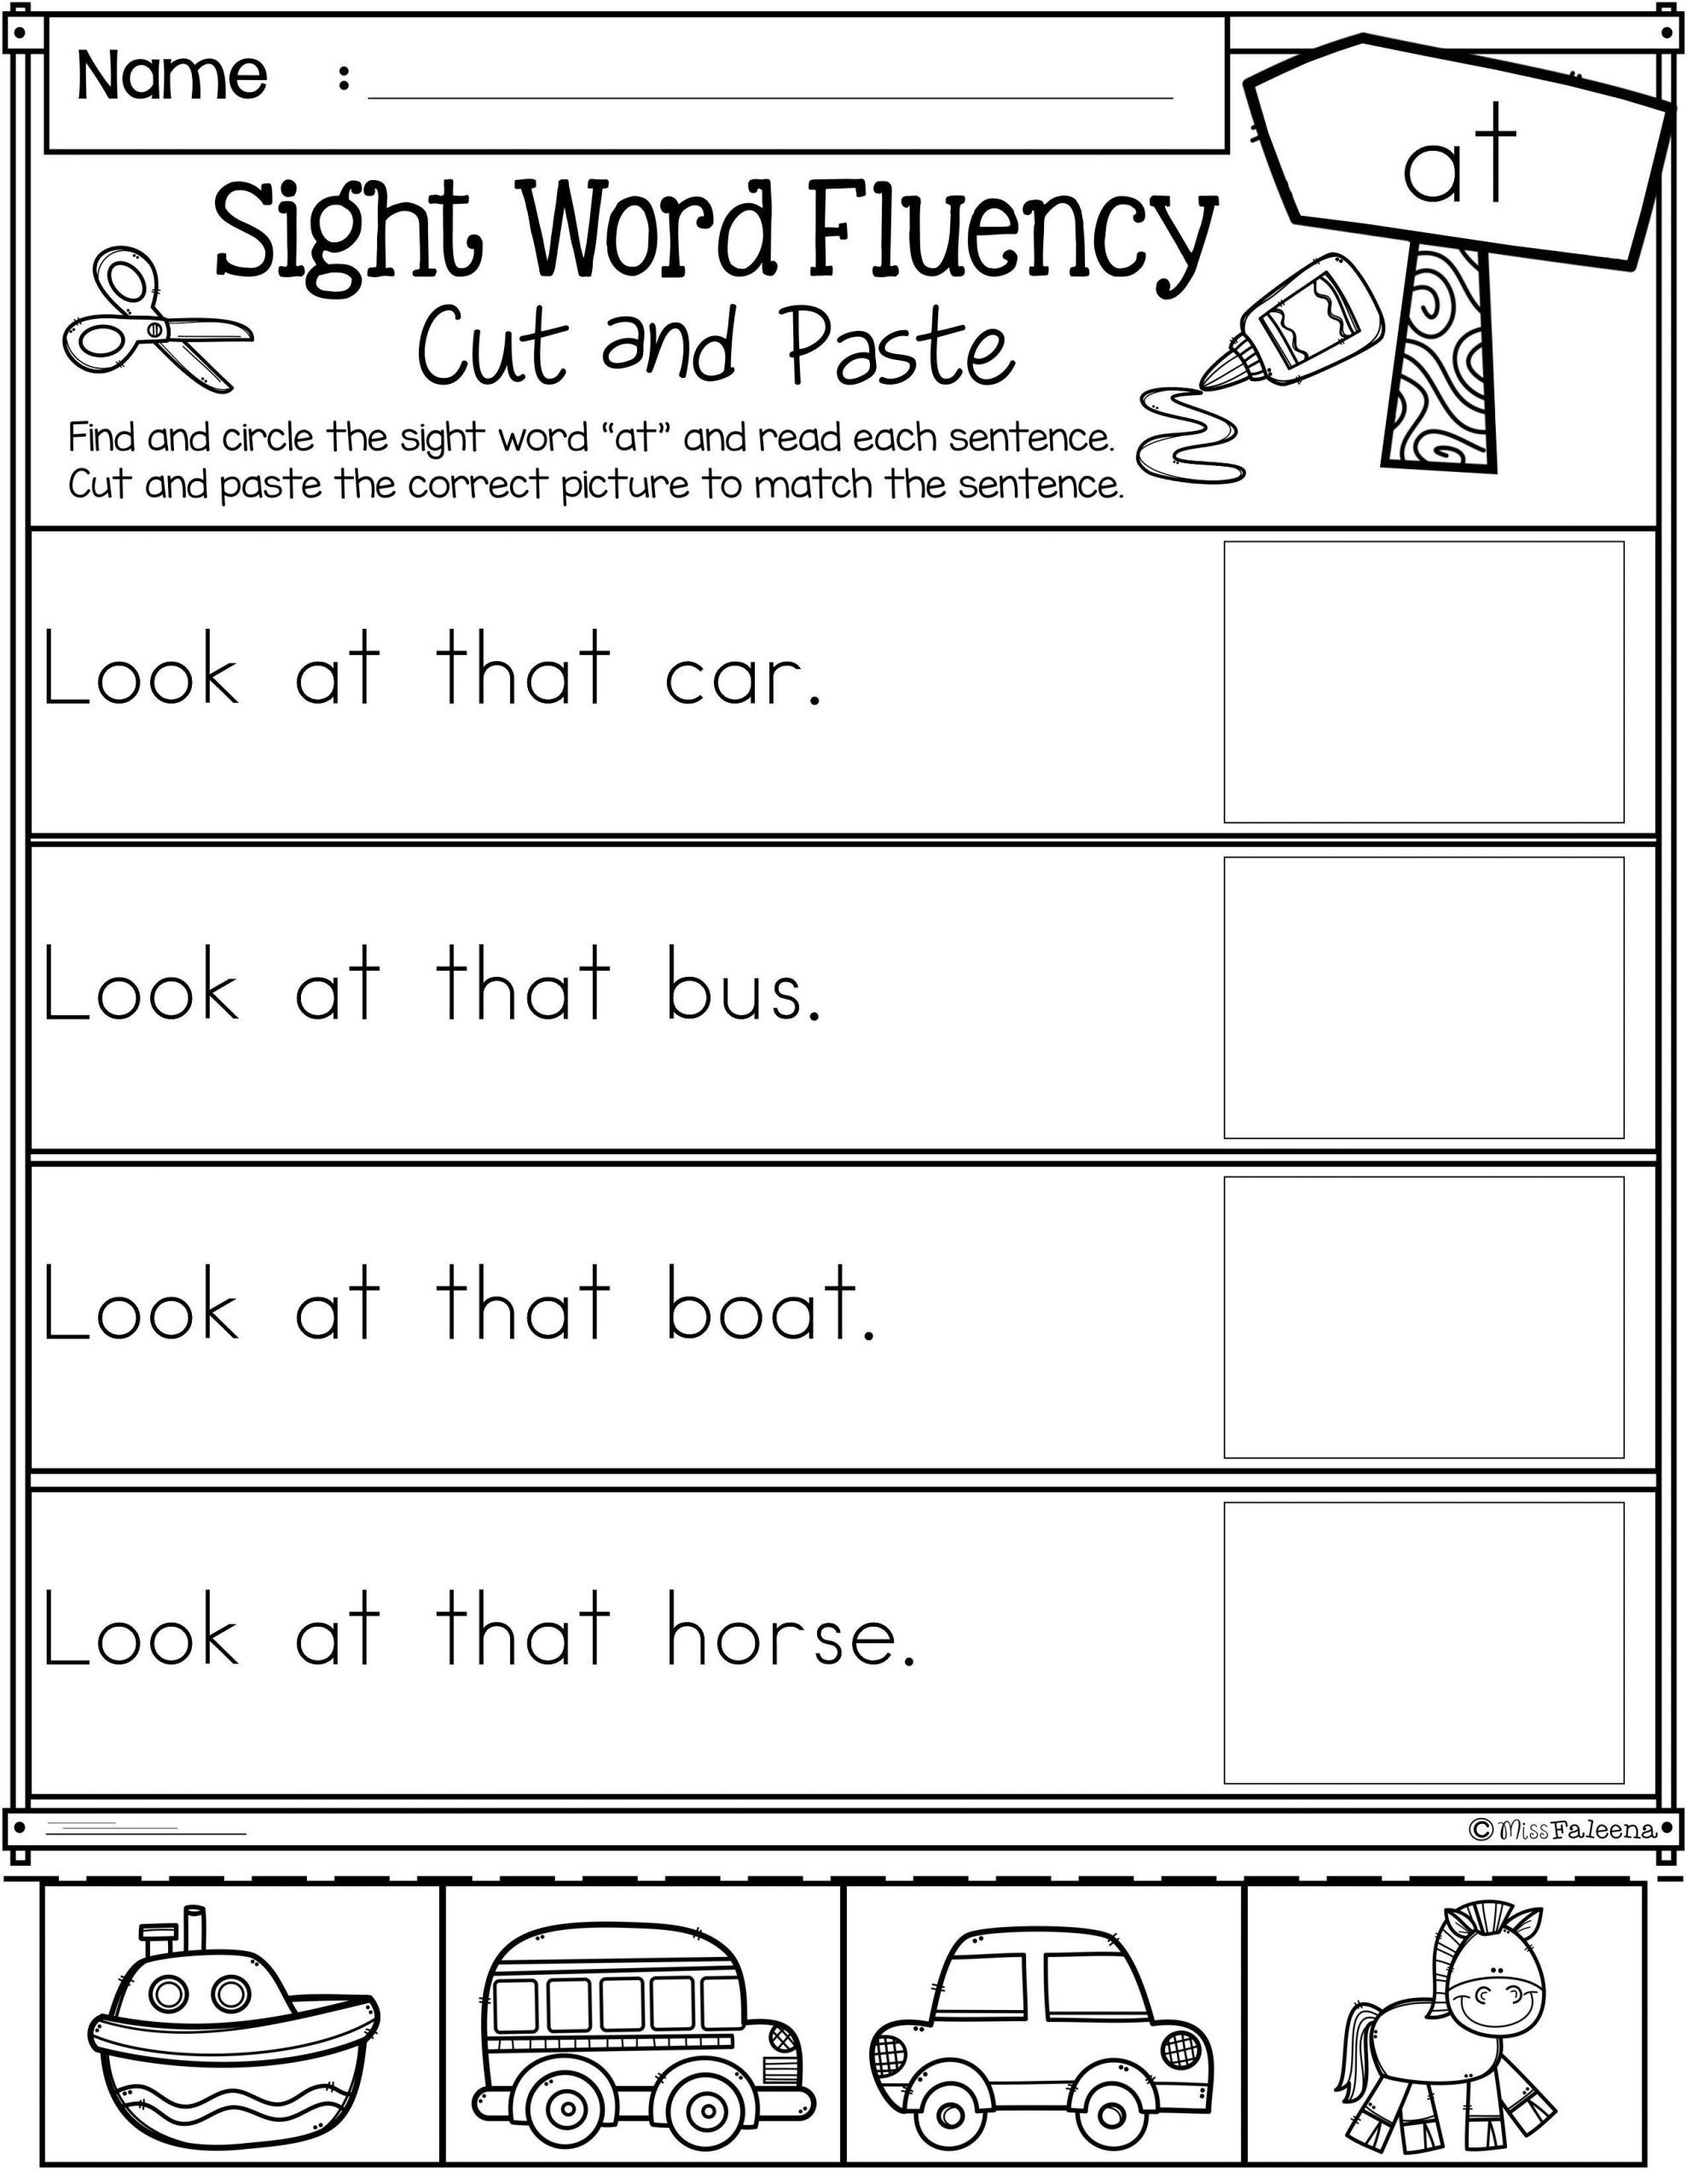 Decoding Worksheets For 1st Grade Pin On Reading Worksheets Sight Words Kindergarten Kindergarten Reading Worksheets Sight Word Fluency [ 2560 x 1978 Pixel ]